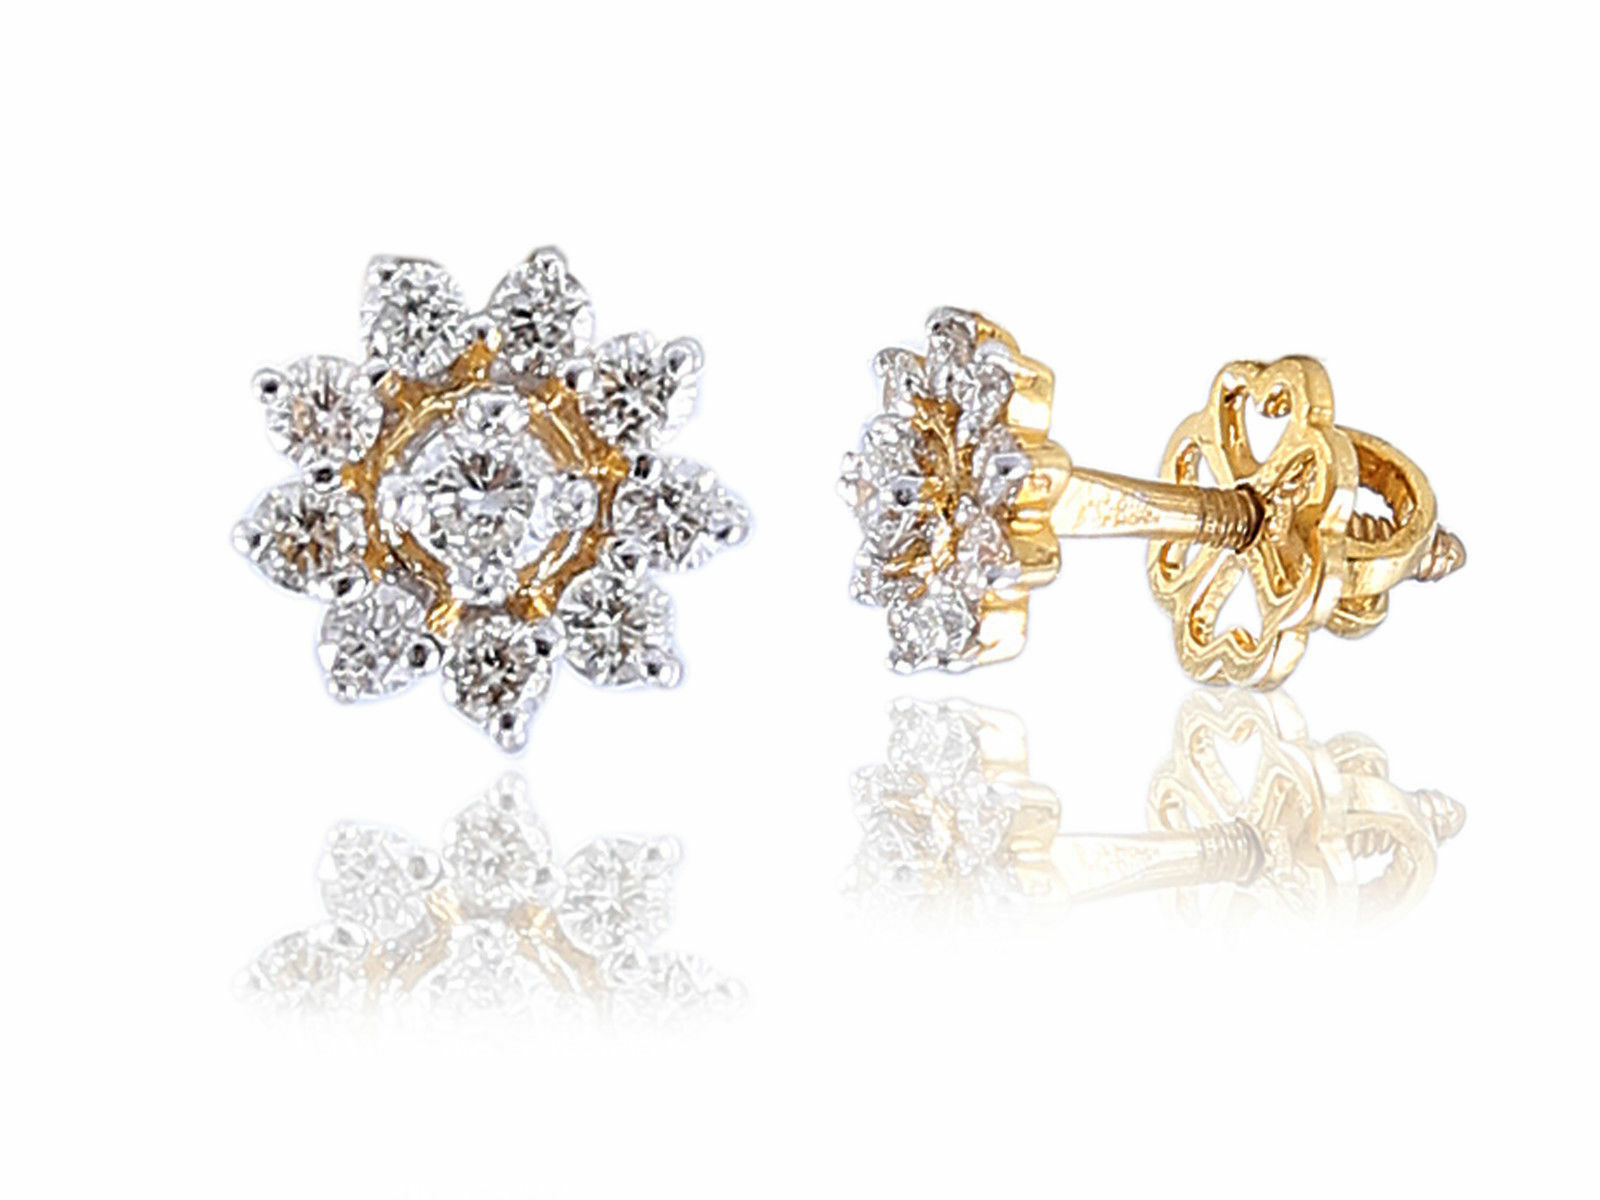 Classy 0.54 Cts Natural Diamonds Stud Earrings In Fine Certified 14K Yellow gold